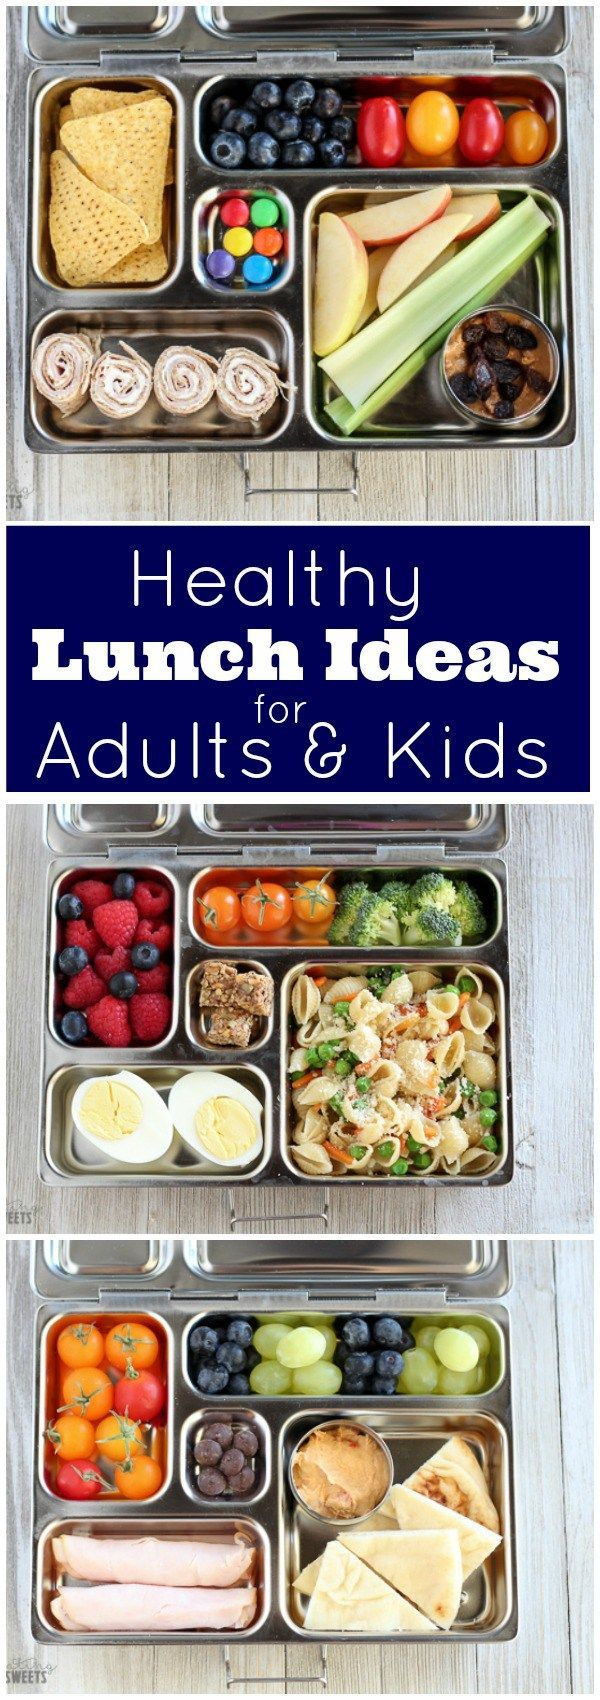 Treat yourself to some snacks! http://amzn.to/2oEqnkm Healthy Lunch Ideas for Kids and Adults